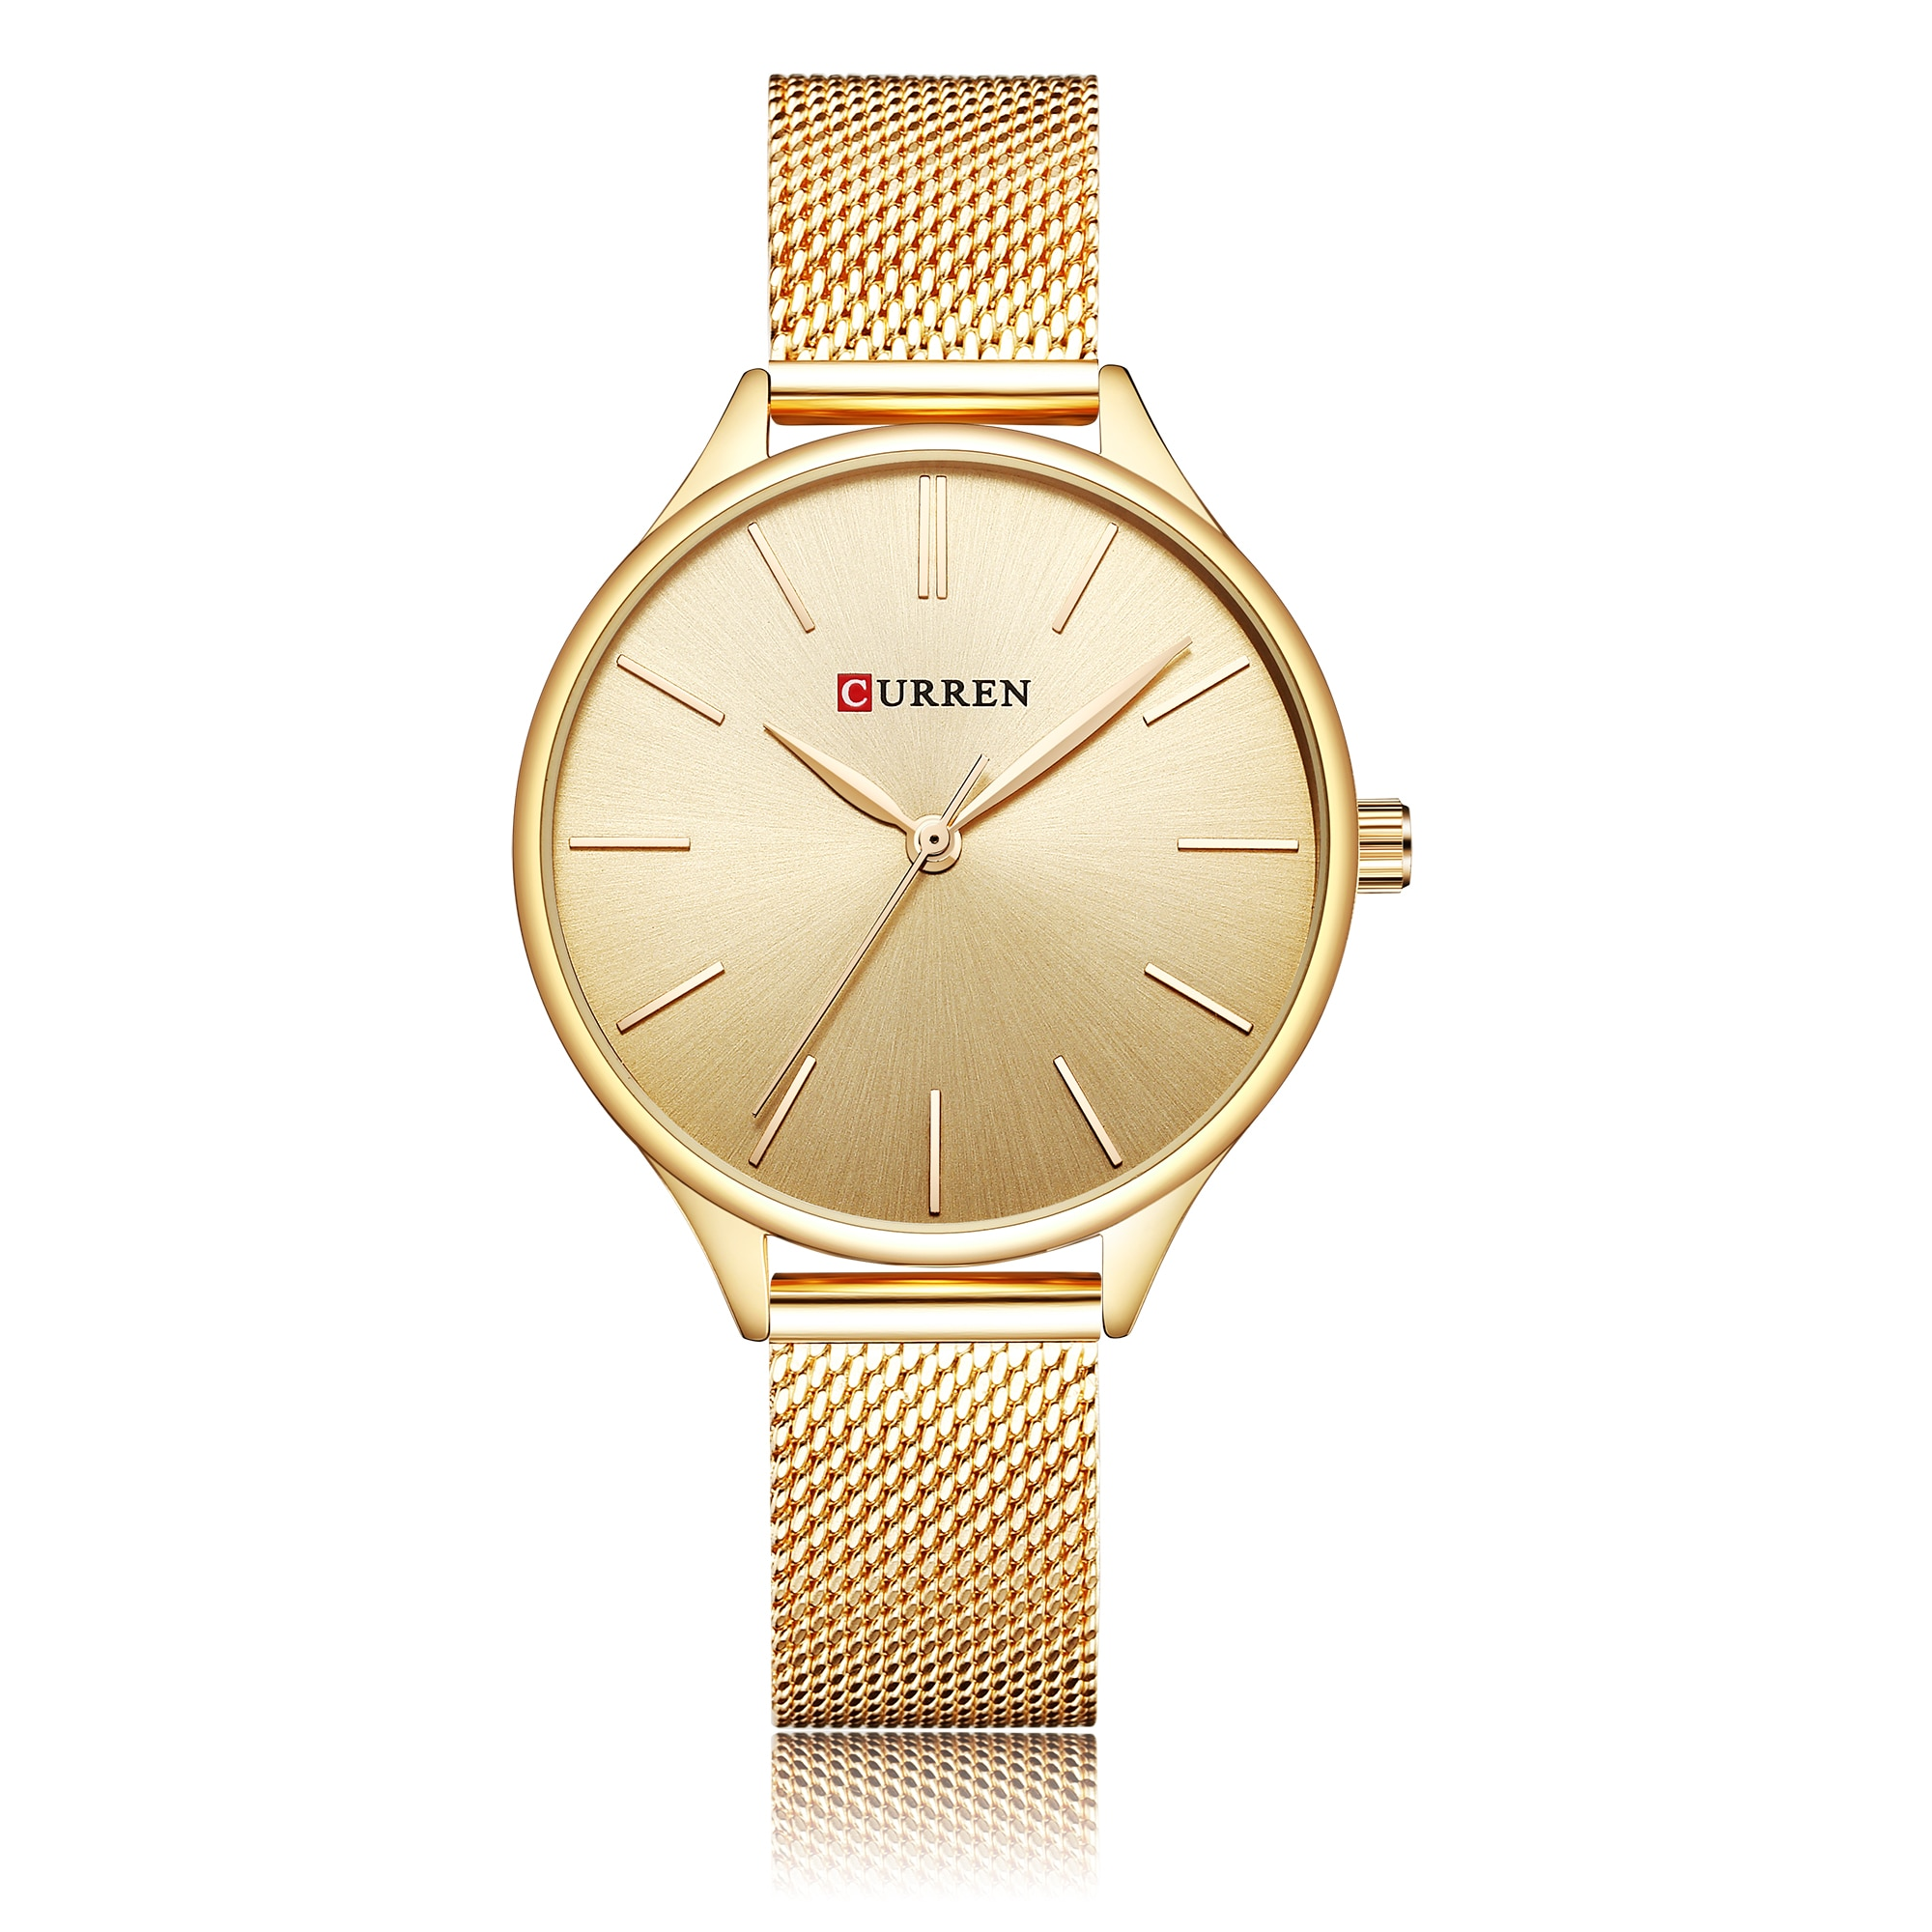 CURREN Female Clock Ladies Gifts Fashion Watches Trendy Wristwatch Stainless Steel Waterproof Small Relogios Femininos De Pulso enlarge